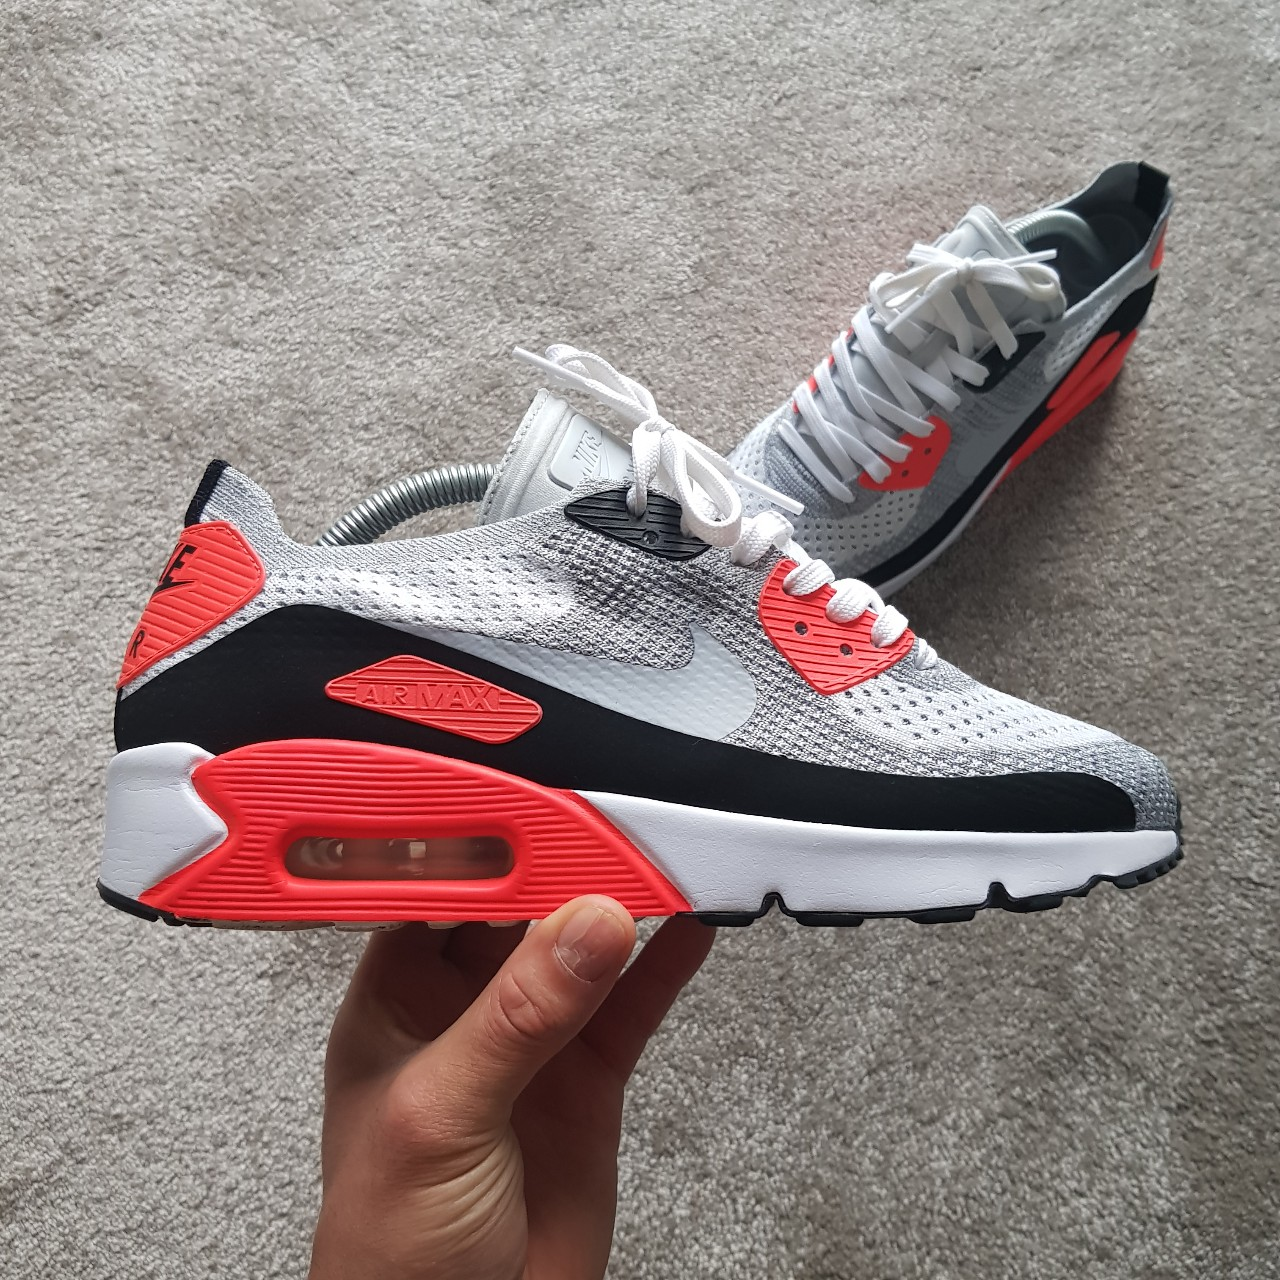 sports shoes fe7c4 25627 Nike Air Max 90 Flyknit - Infrared OG - UK 7 Worn a... - Depop